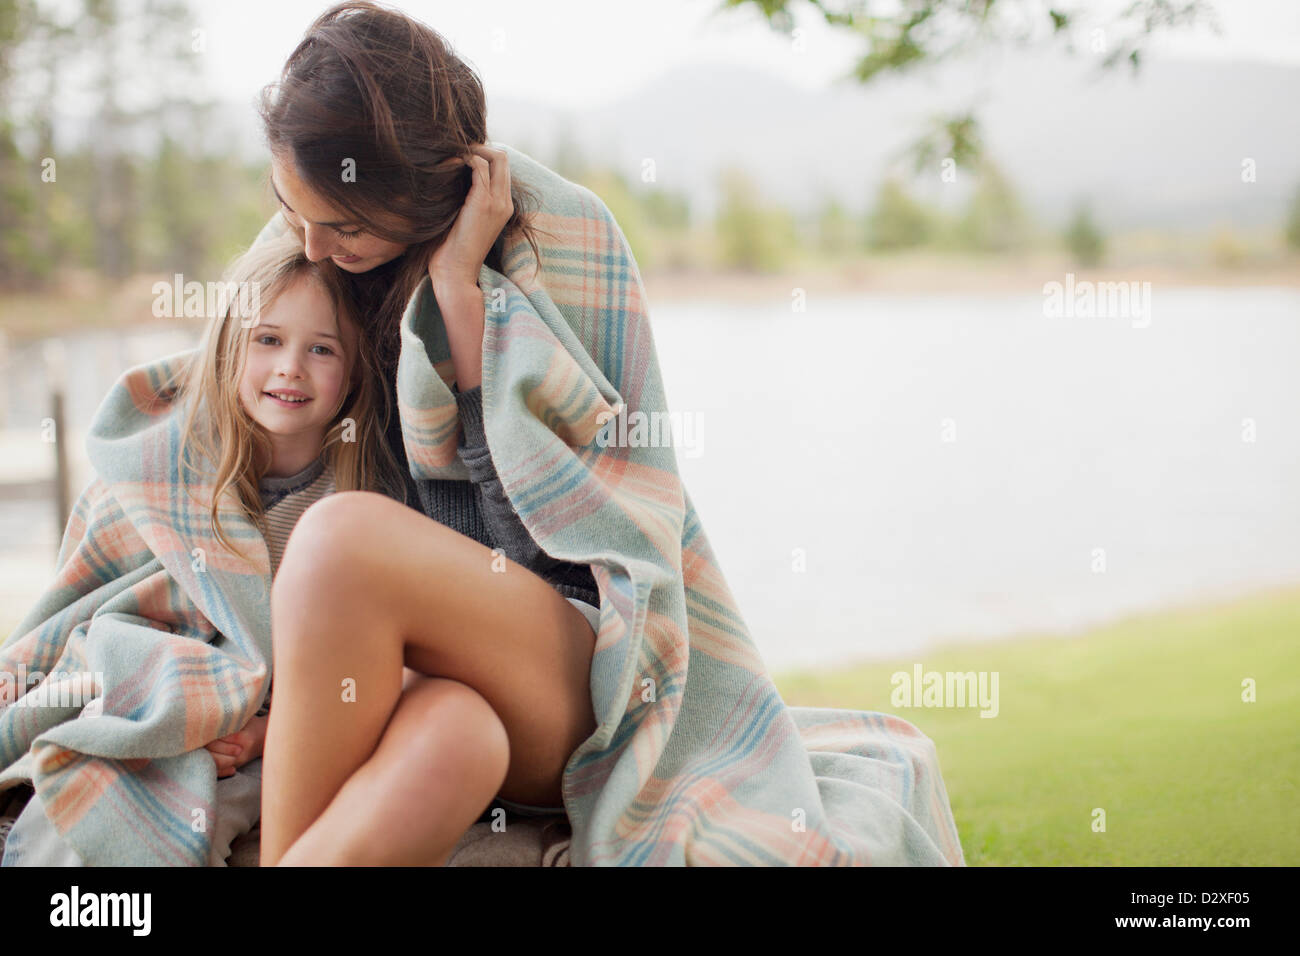 Portrait of smiling daughter wrapped in blanket with mother at lakeside - Stock Image